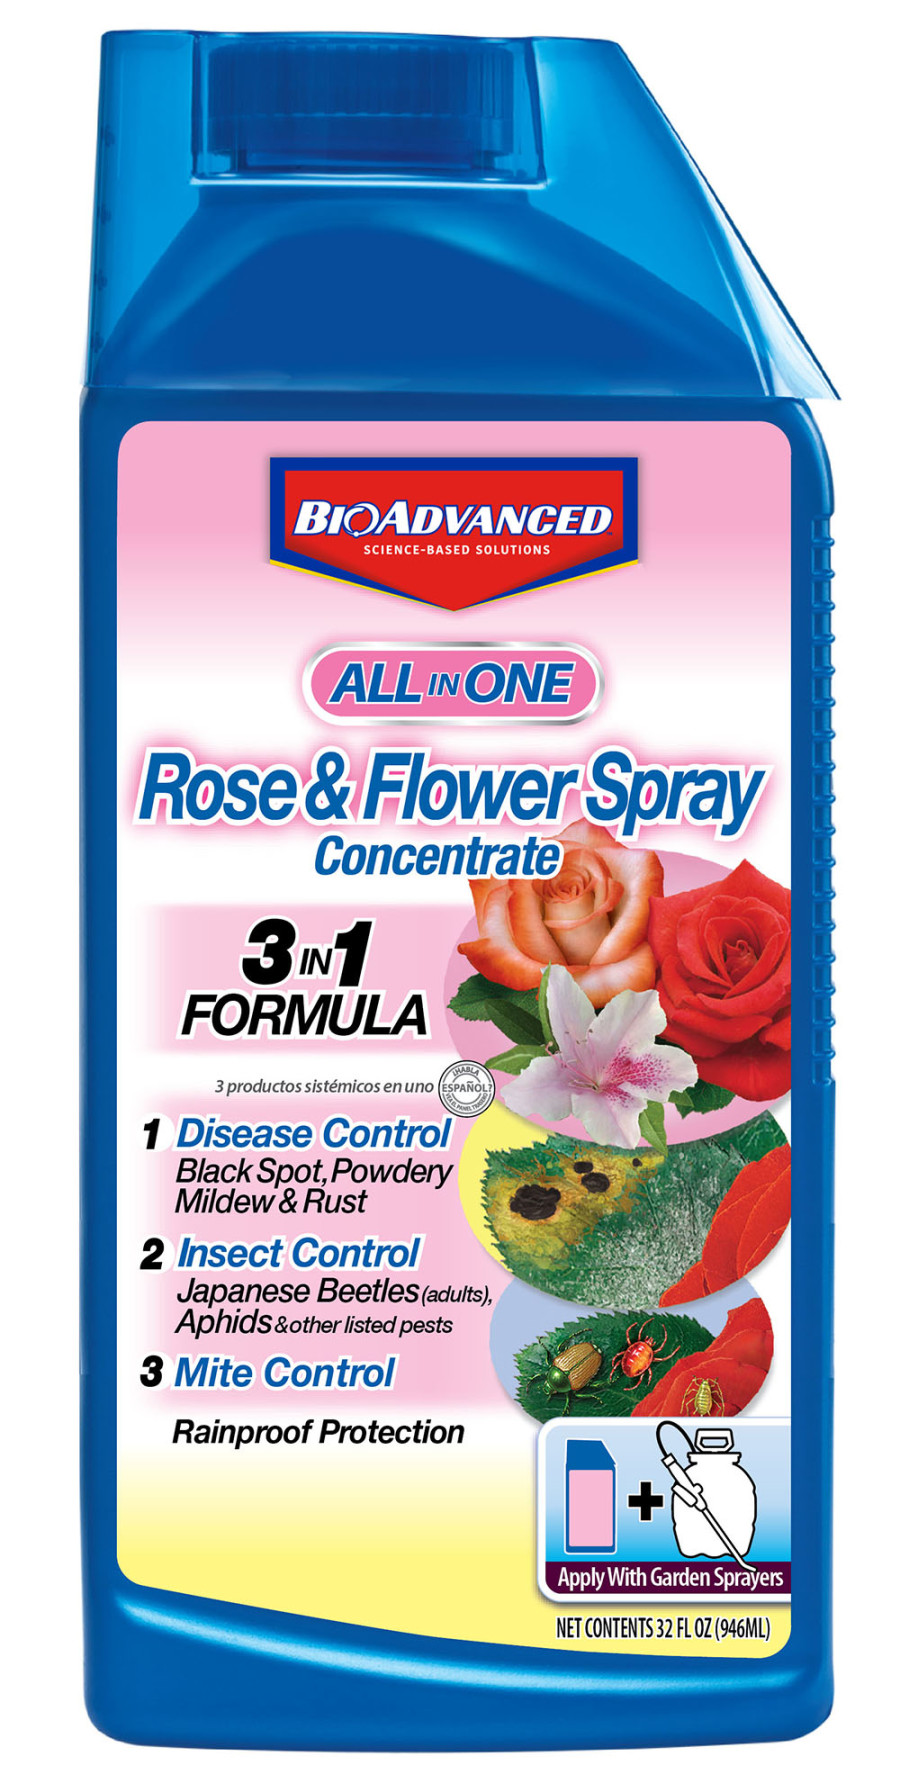 BioAdvanced All-In-One Rose & Flower Care Spray Concentrate 4ea/32 fl oz